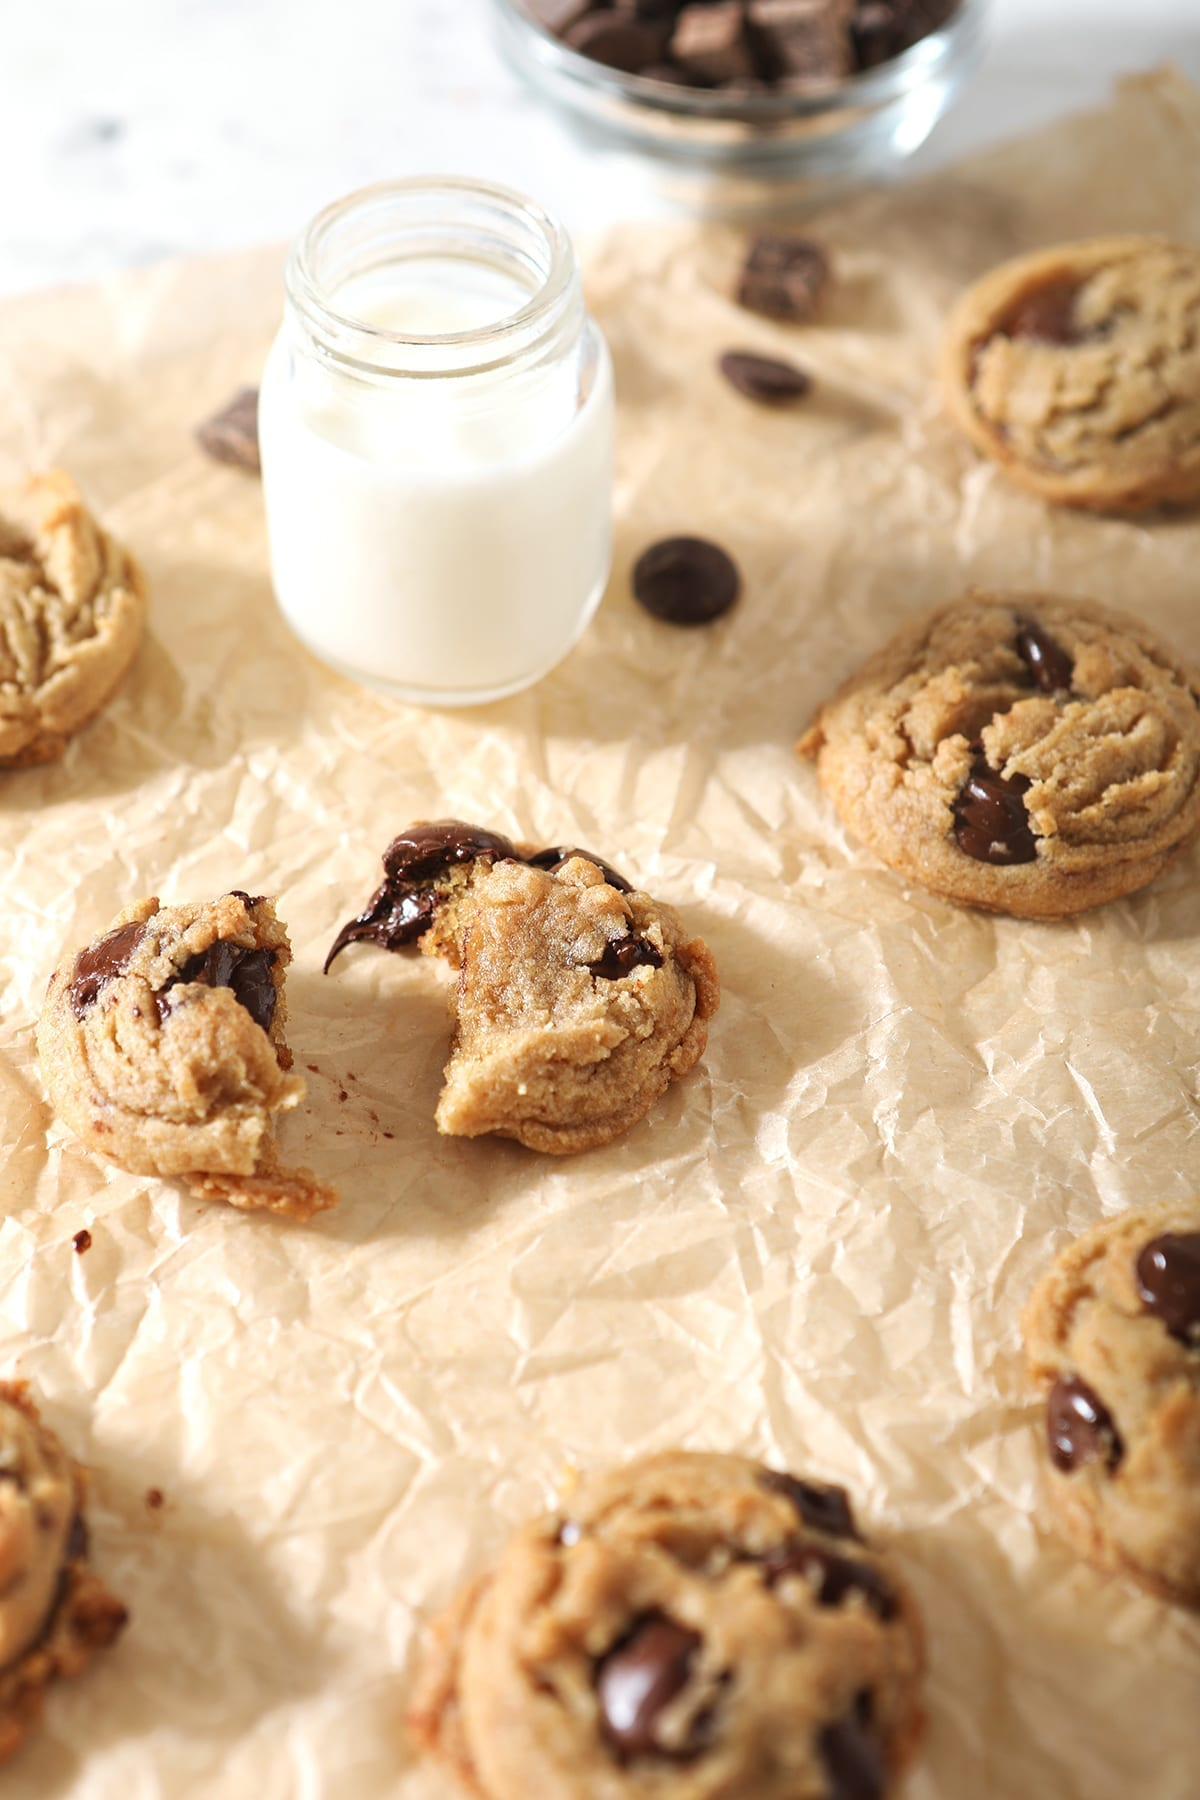 Cookies, fresh out of the oven, are shown on brown paper with shot glasses of milk